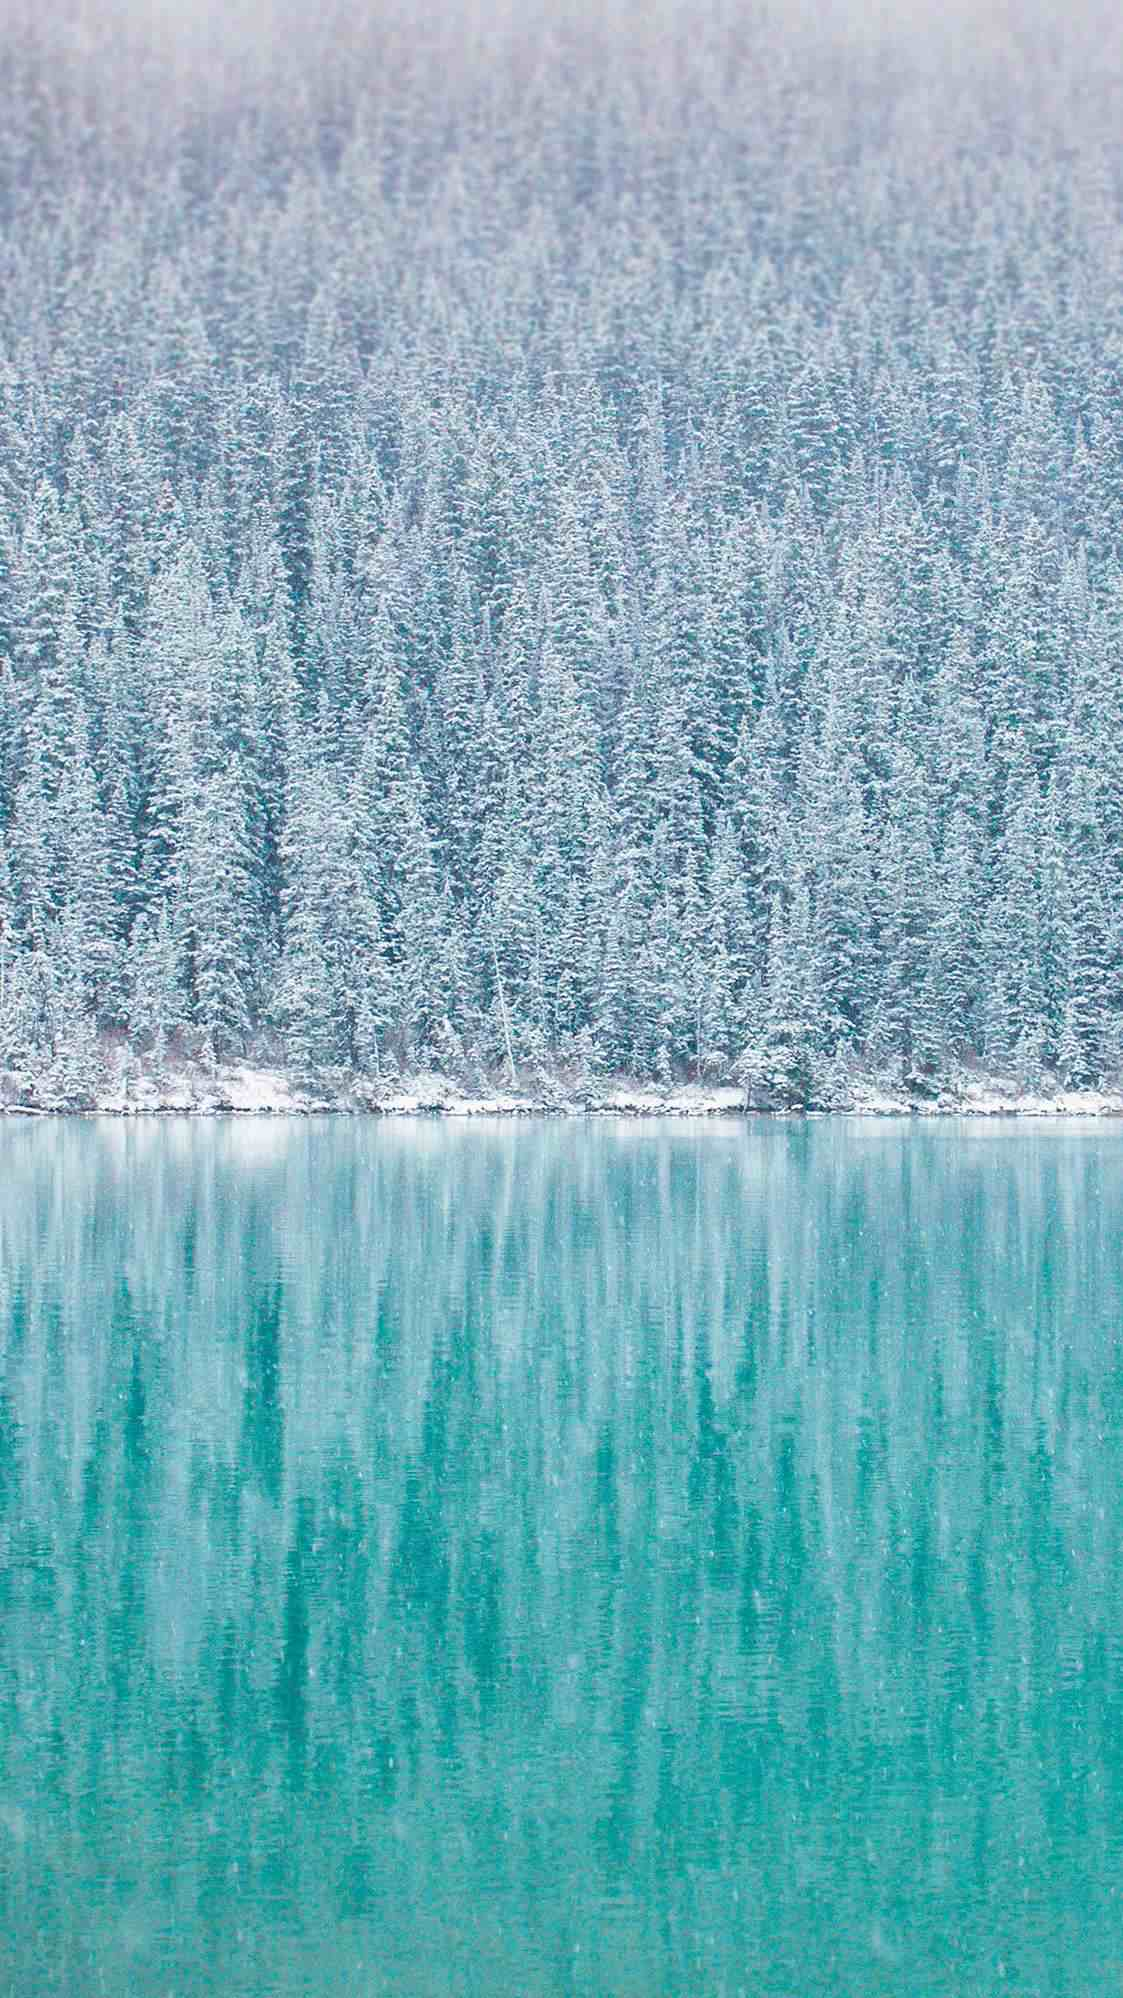 Snow Forest Blue Lake iPhone Wallpaper